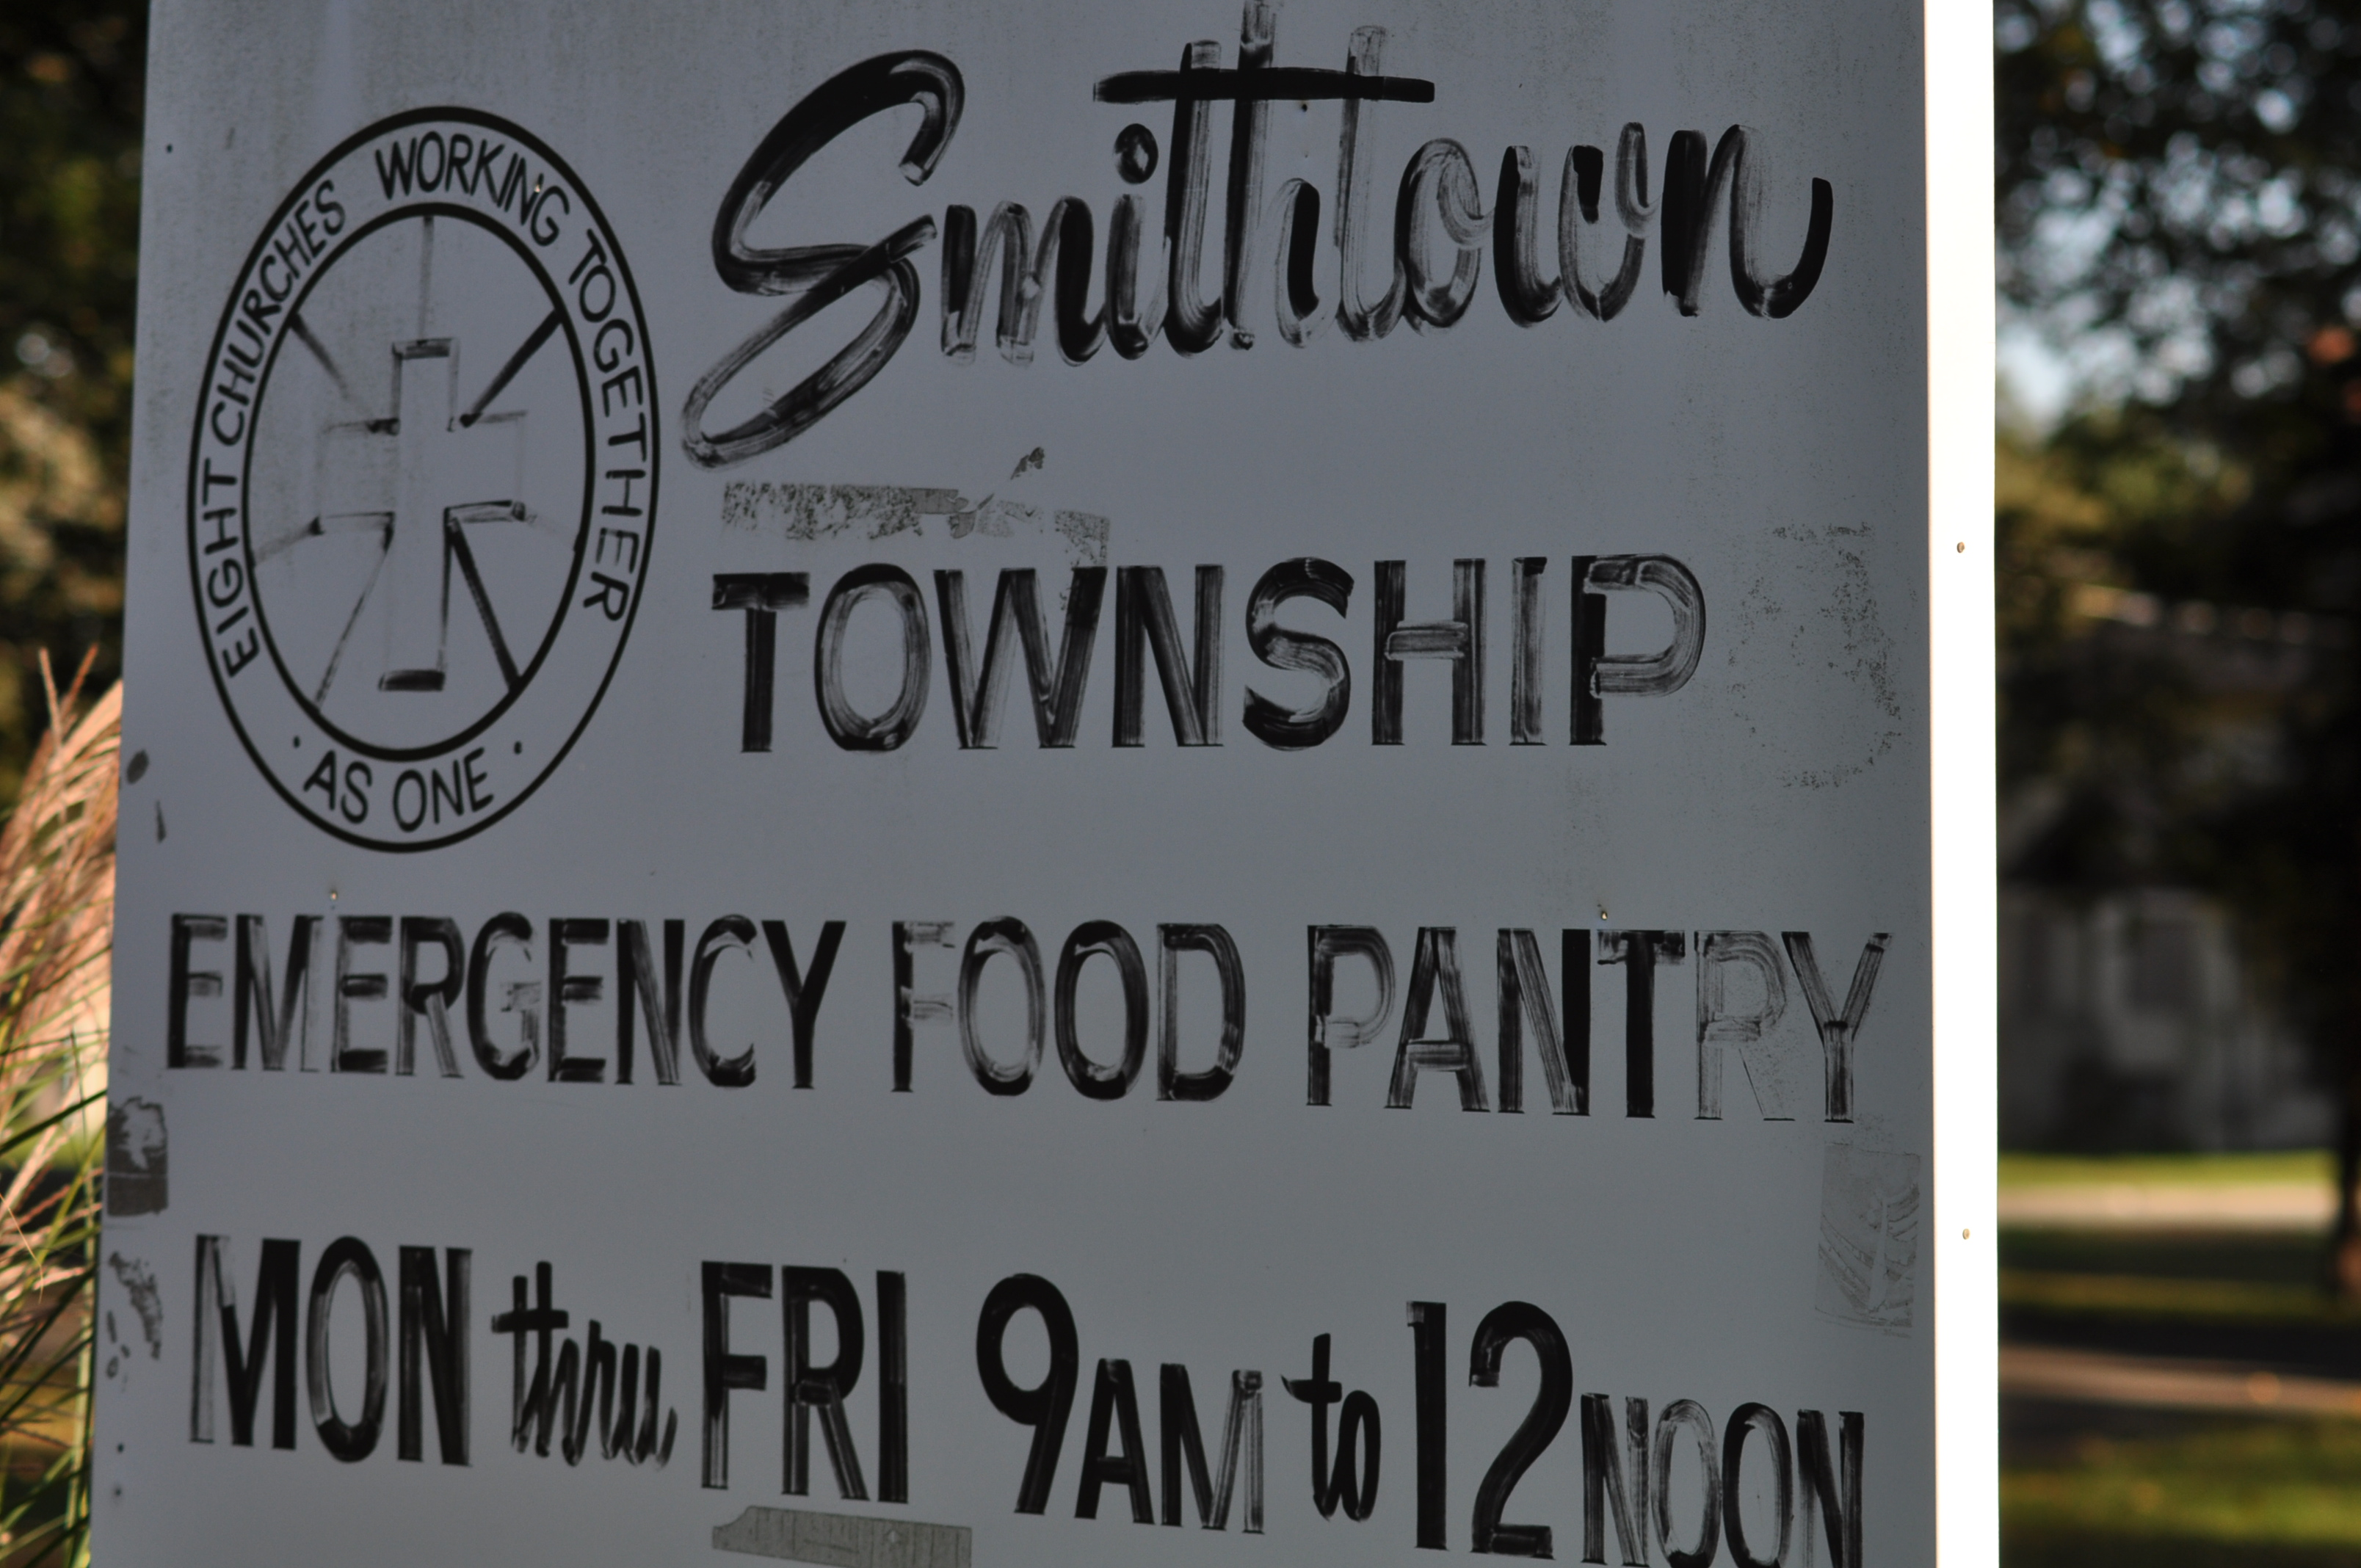 Smithtown Township Emergency Food Pantry Needs Your Help Article